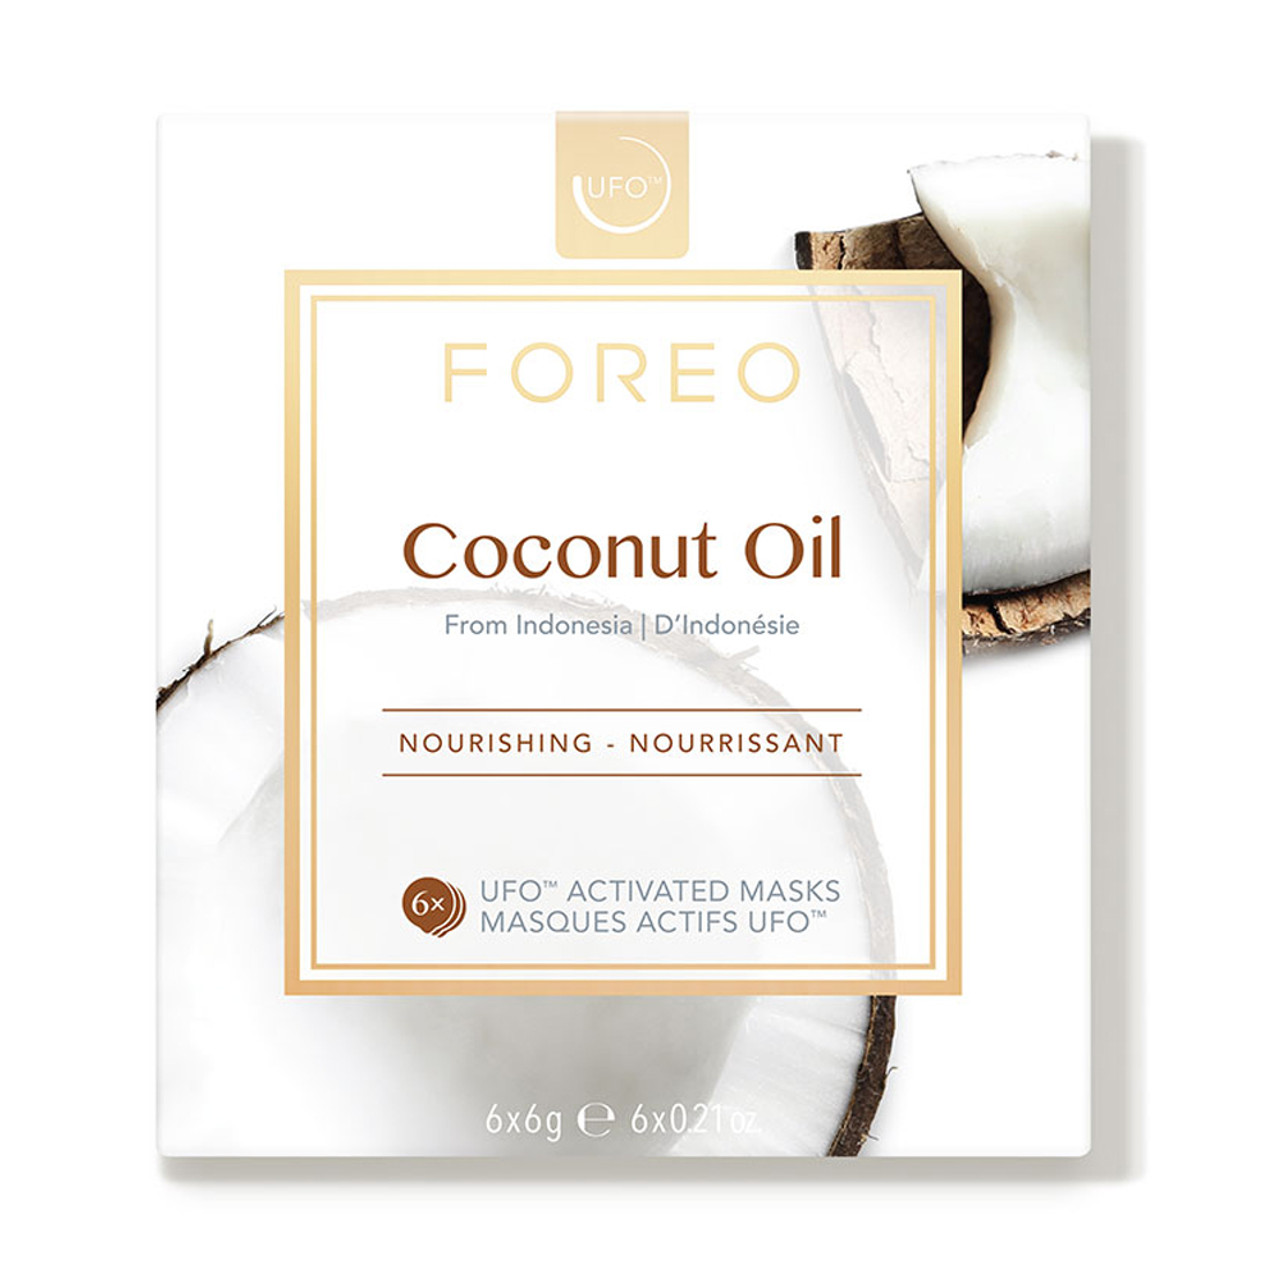 Foreo UFO Activated Masks - Coconut Oil (6-Pk)